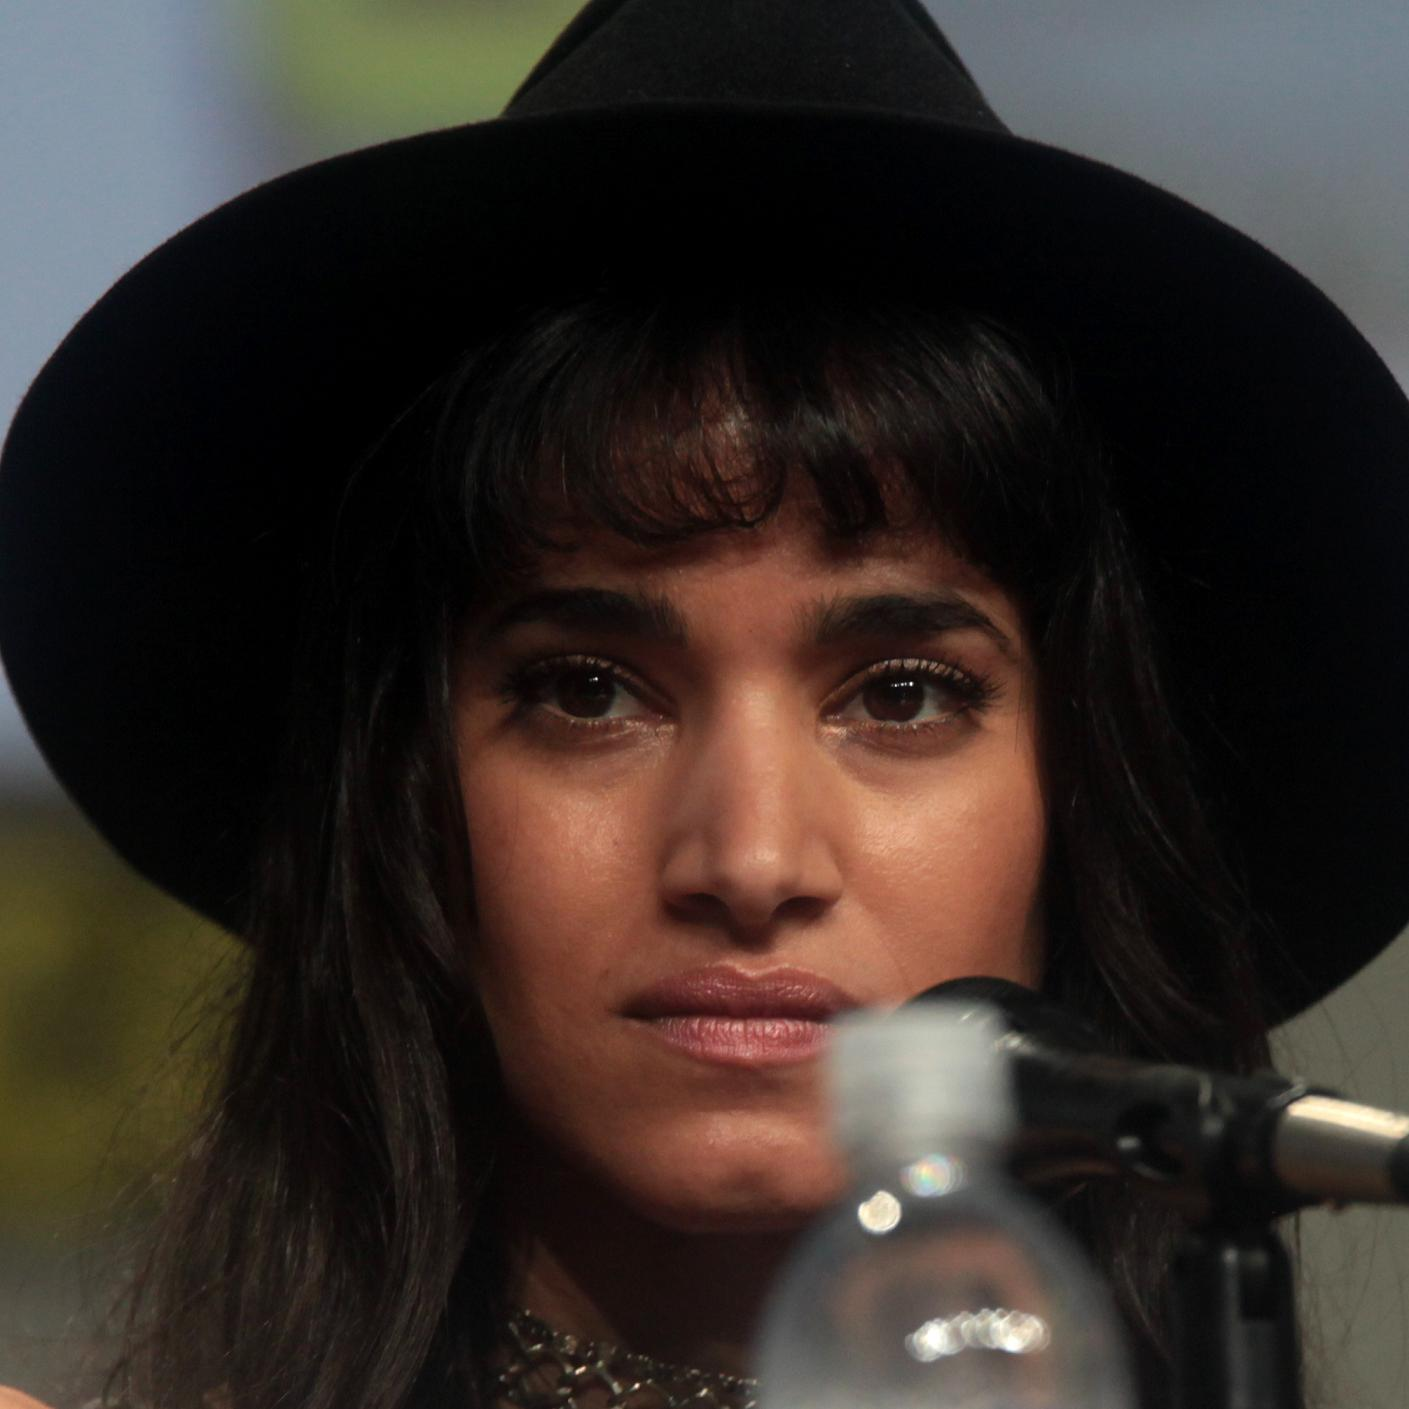 Sofia Boutella Bio, Net Worth, Facts